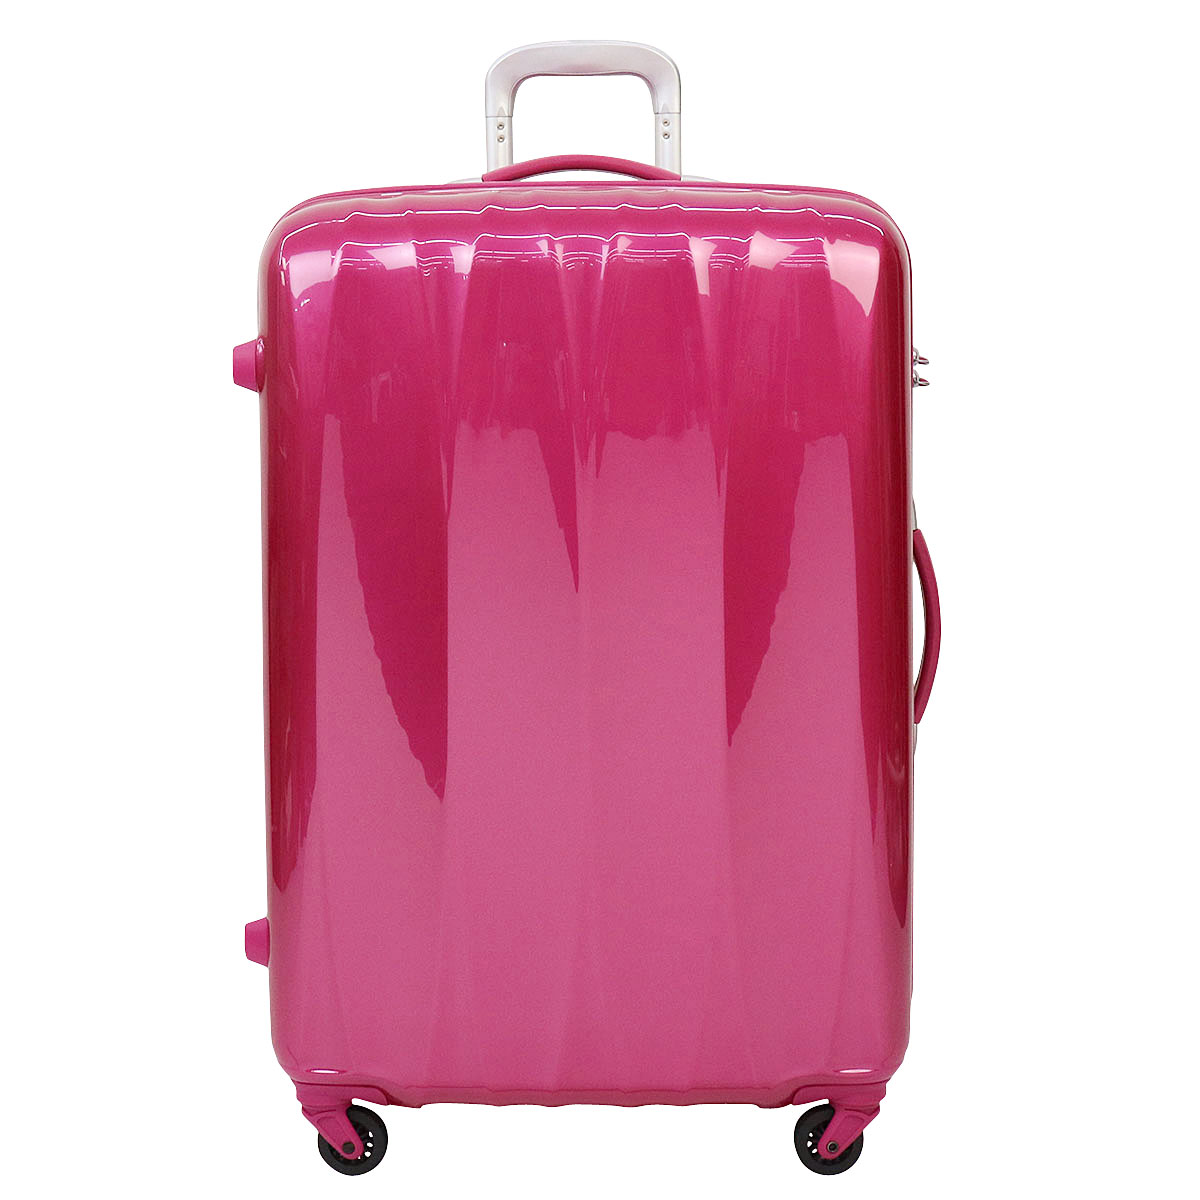 gallery of GALLERIA | Rakuten Global Market: Samsonite suitcase ...